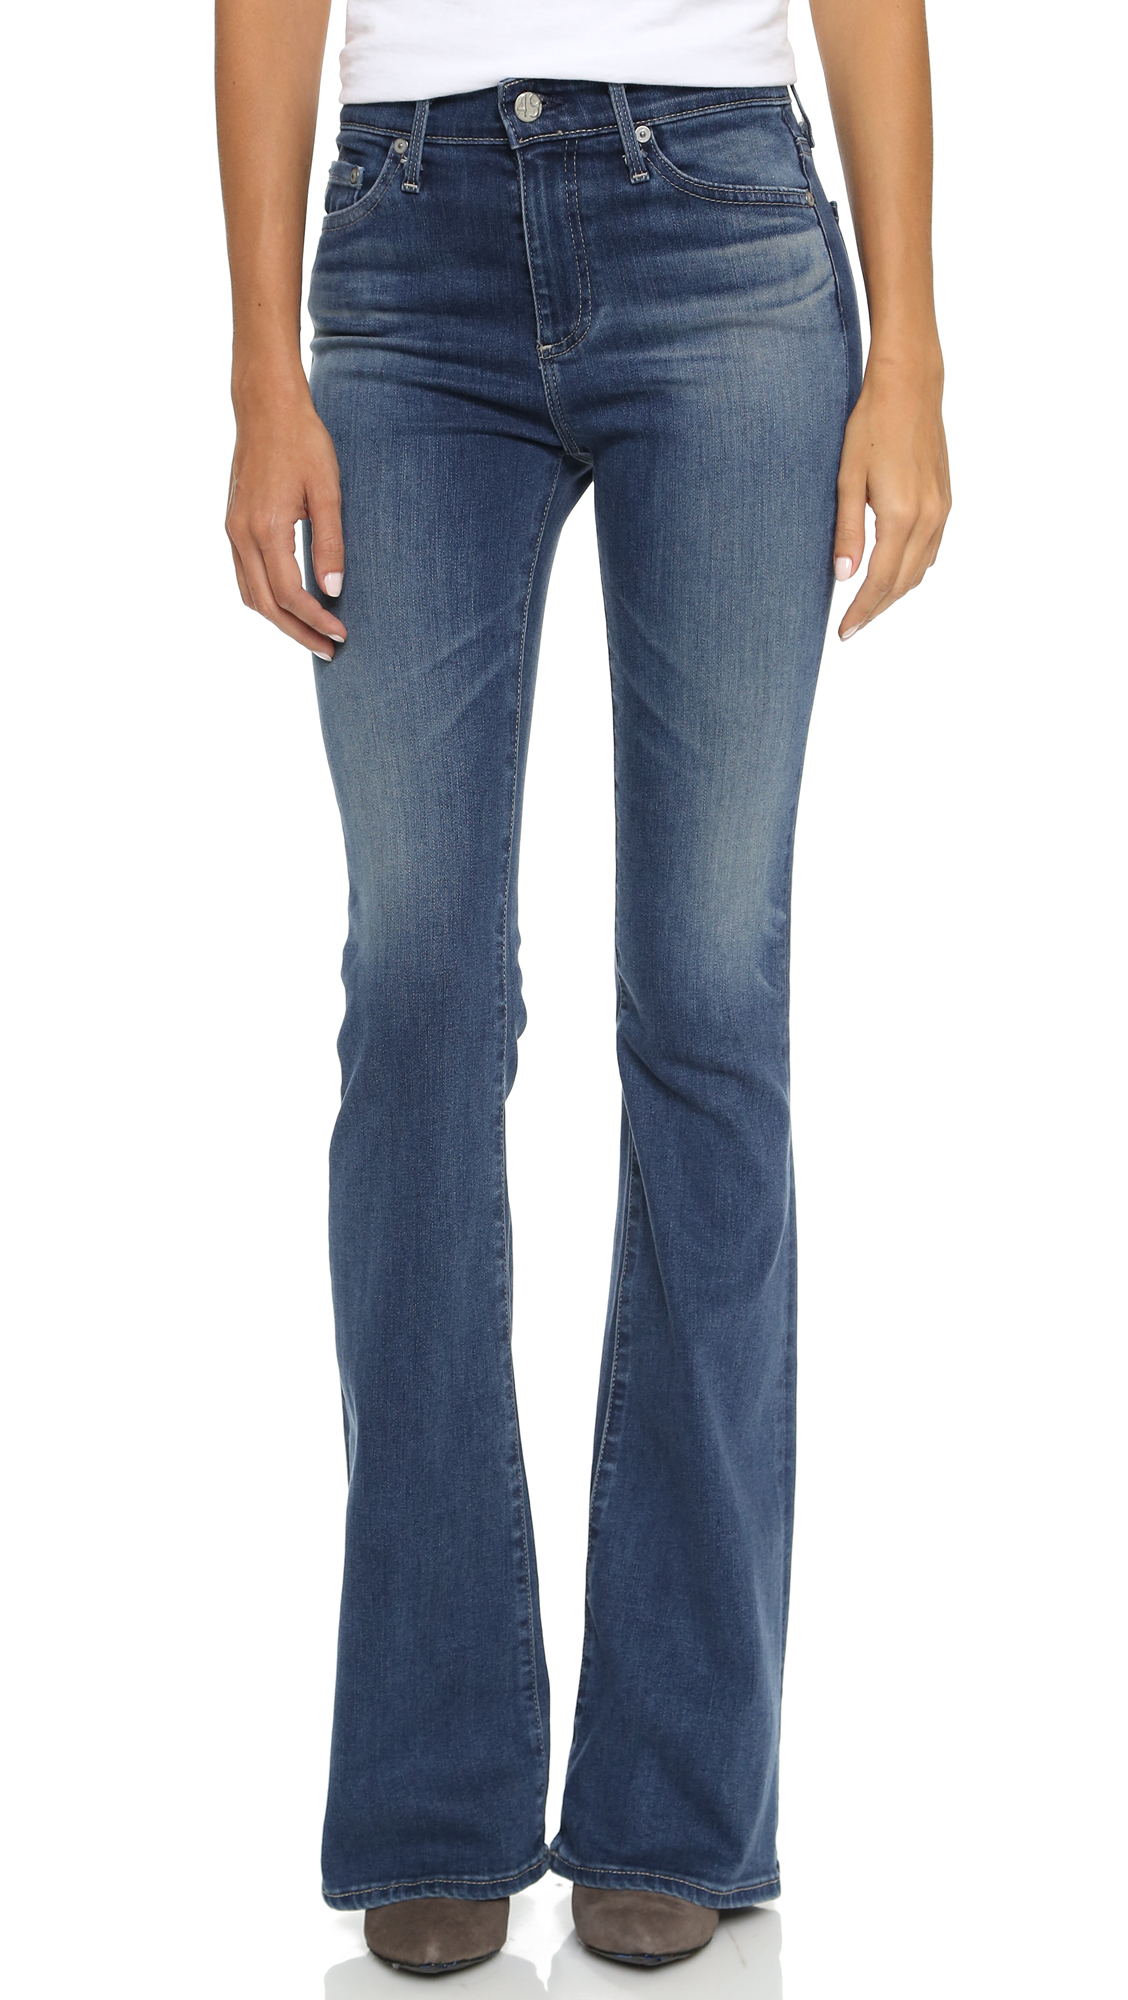 AG The Janis Flare Jeans | 15% off first app purchase with code ...